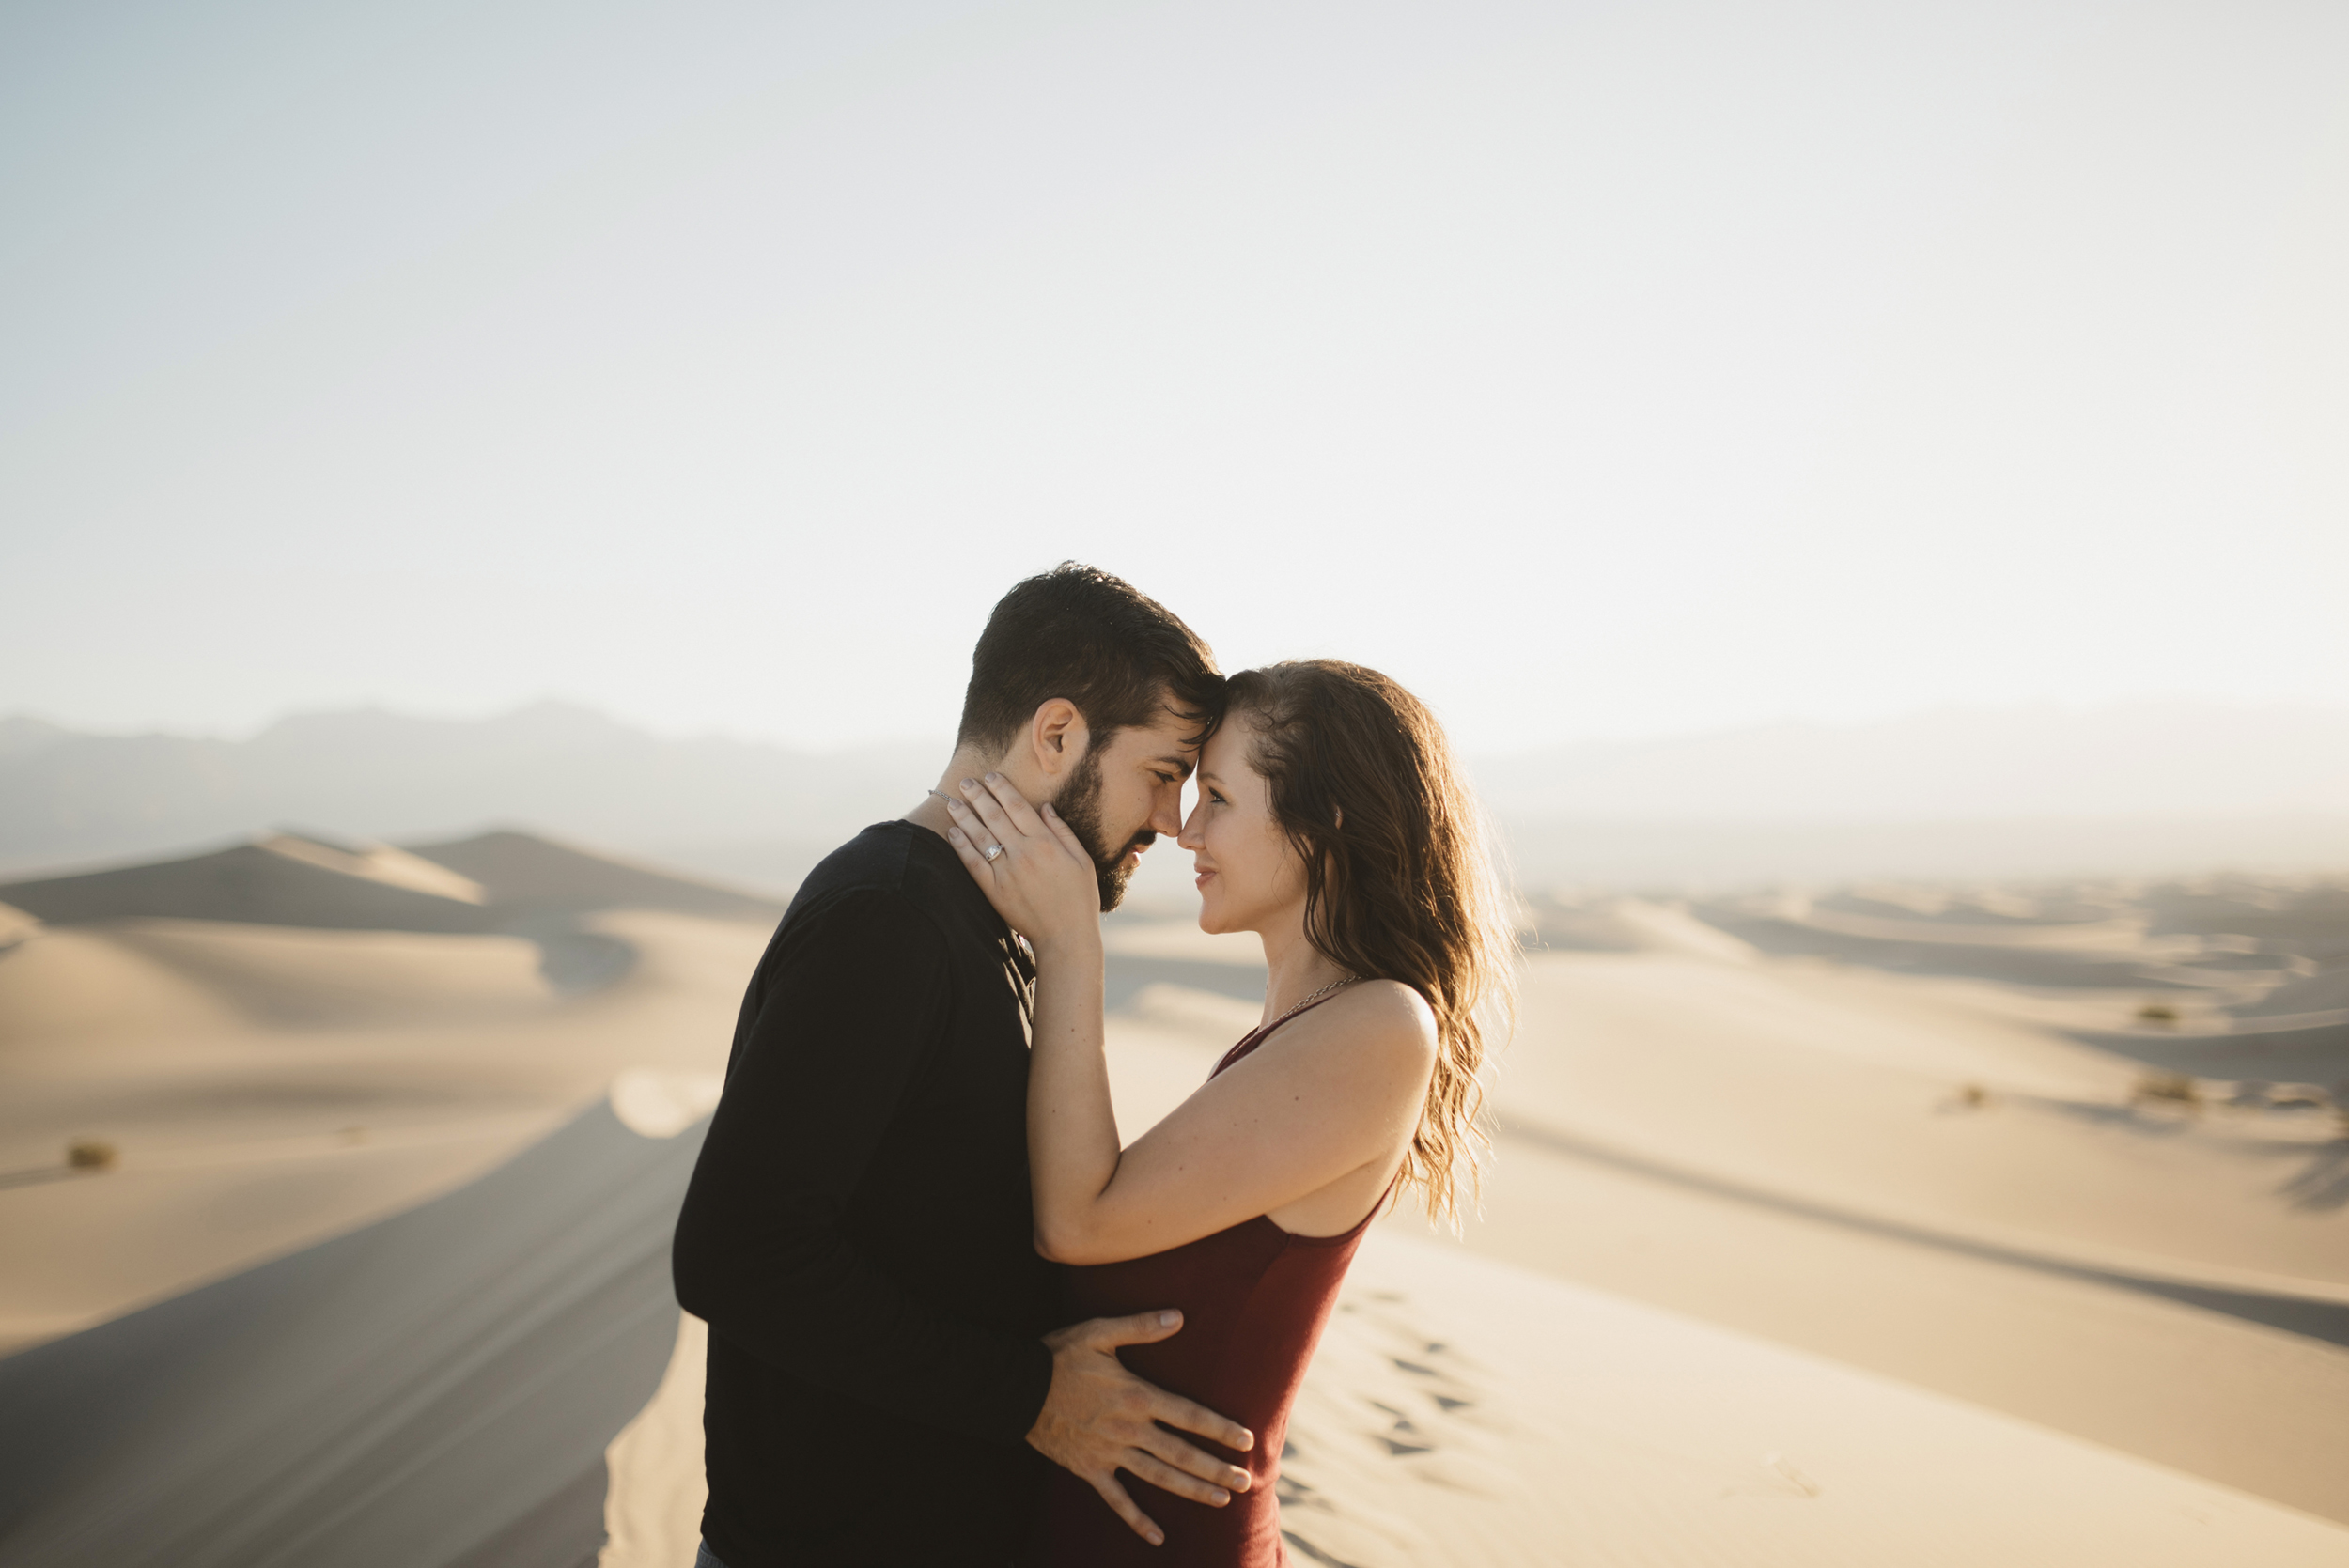 Death Valley California Desert Adventure Engagement Photographer168.jpg